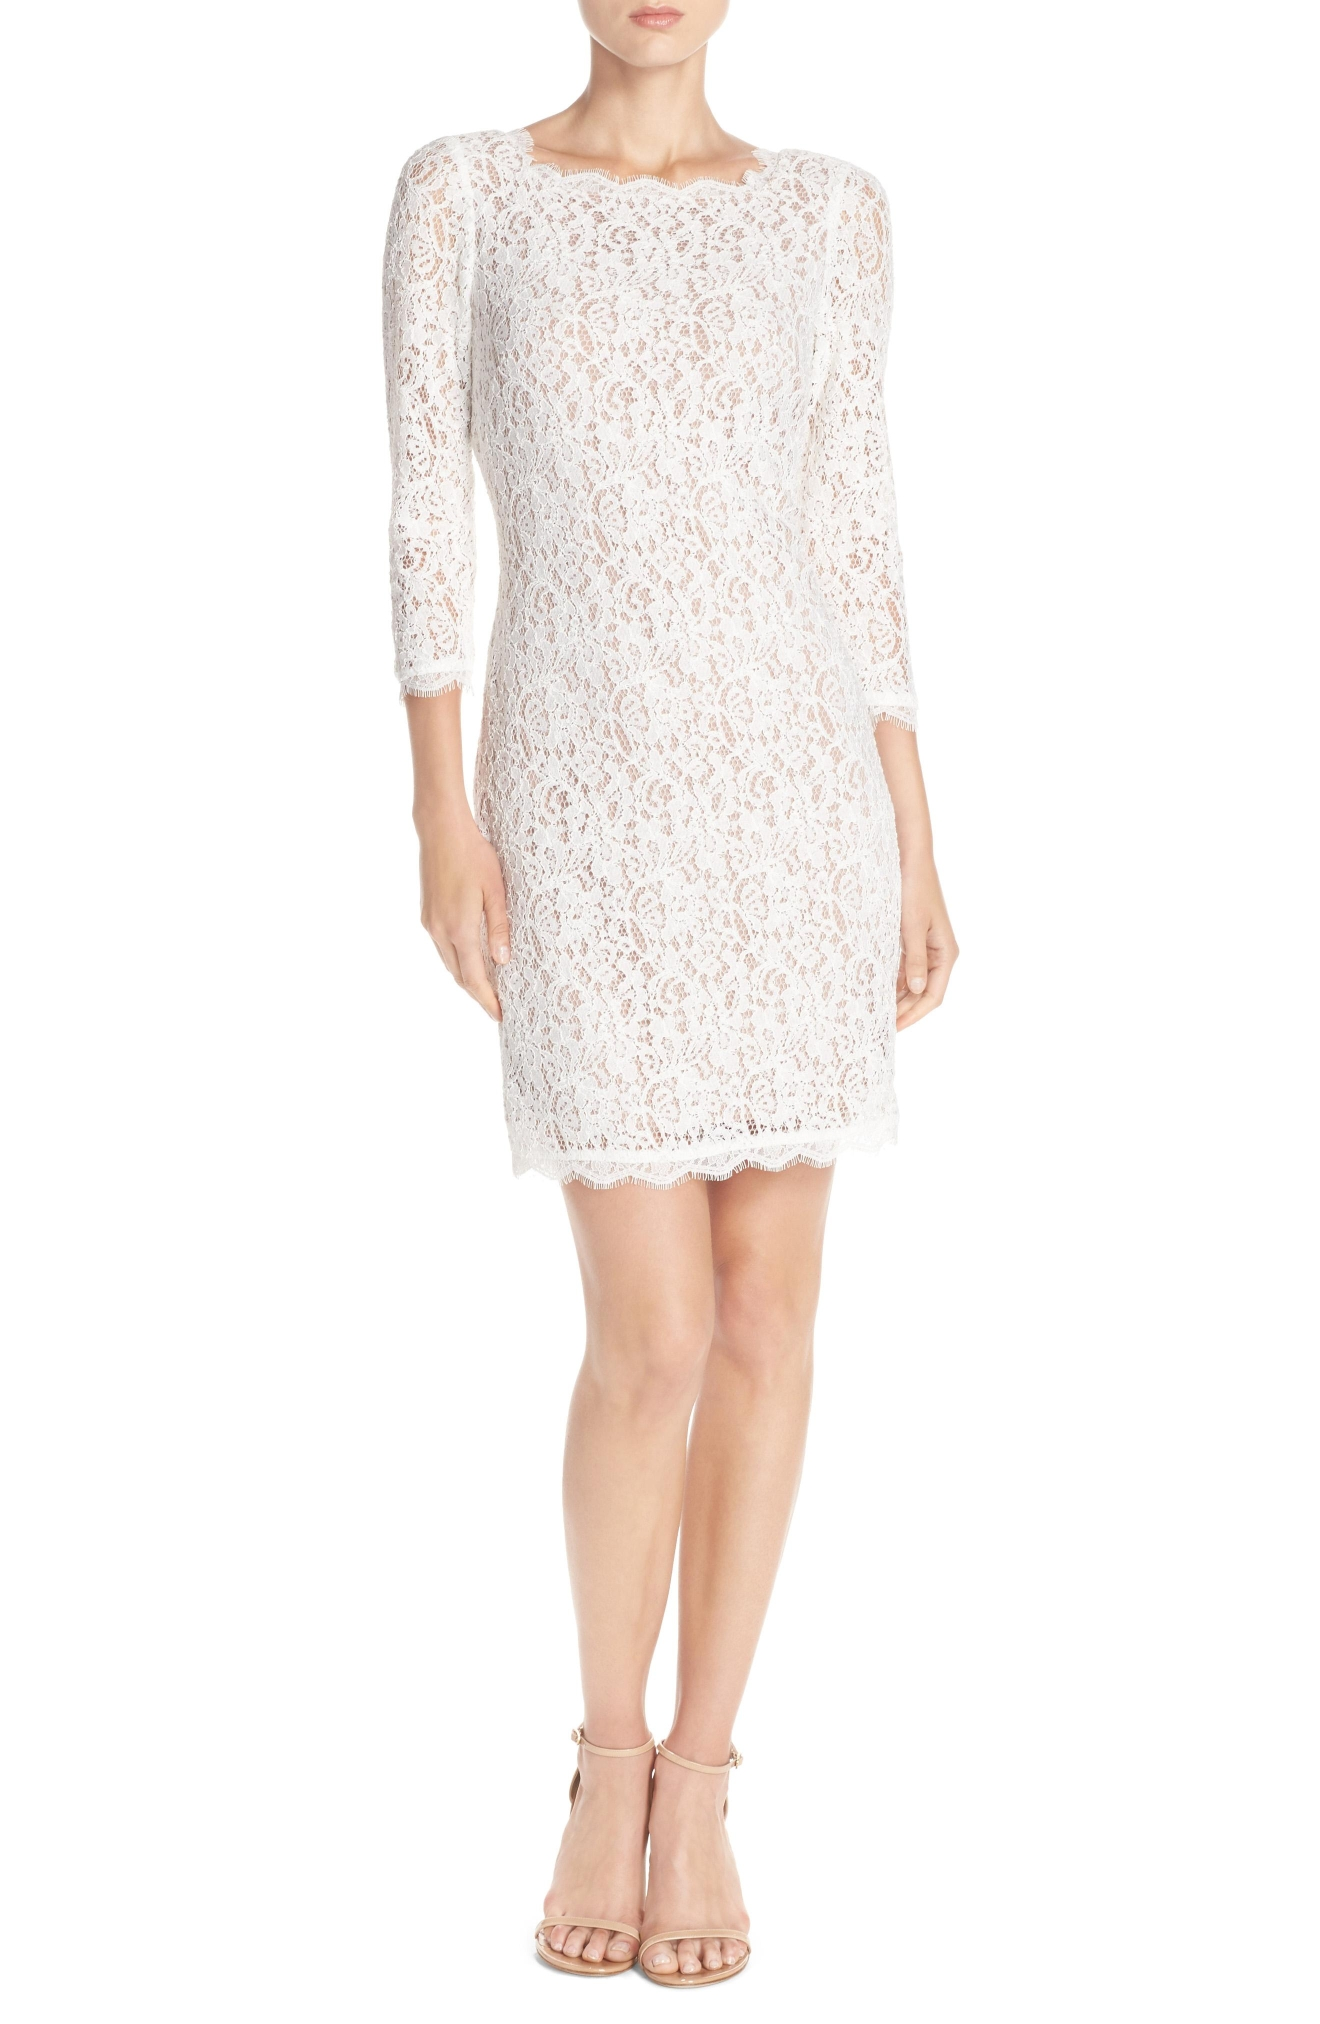 Adrianna Papell Lace Overlay Sheath Dress, $158, Nordstrom.com (Image: Courtesy Nordstrom)